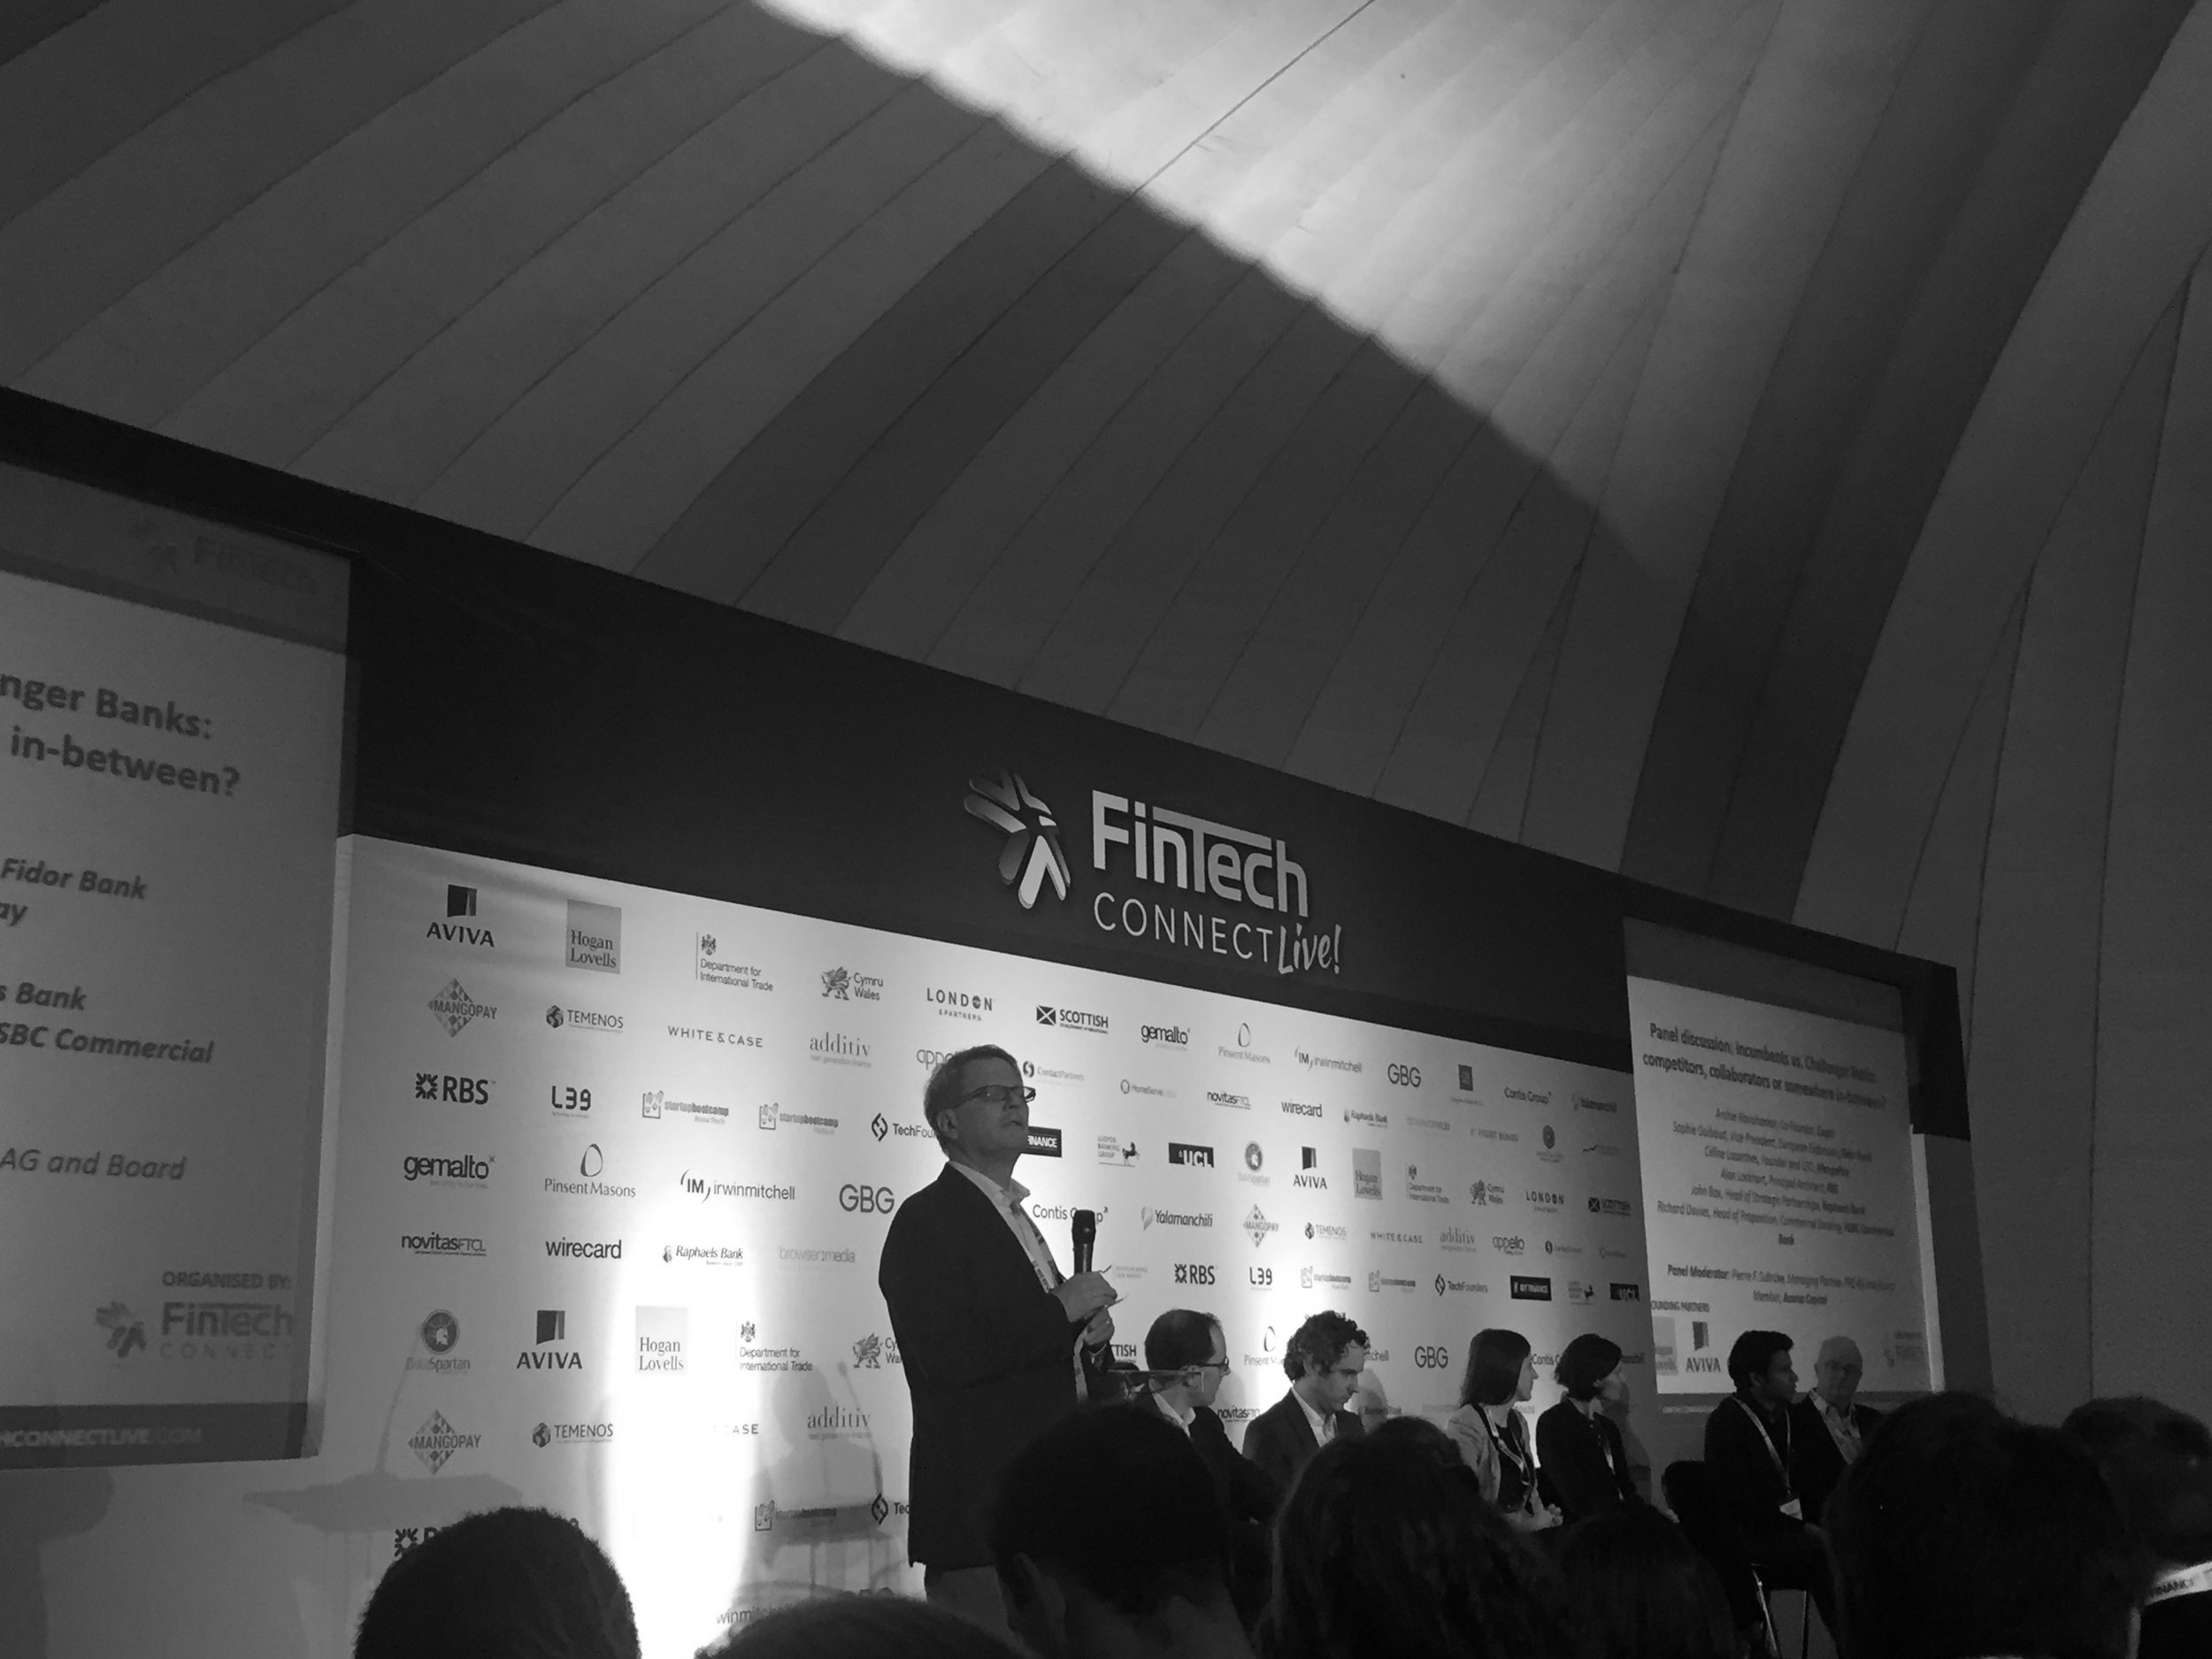 Pierrechaired a panel on challenger banks vs incumbents.